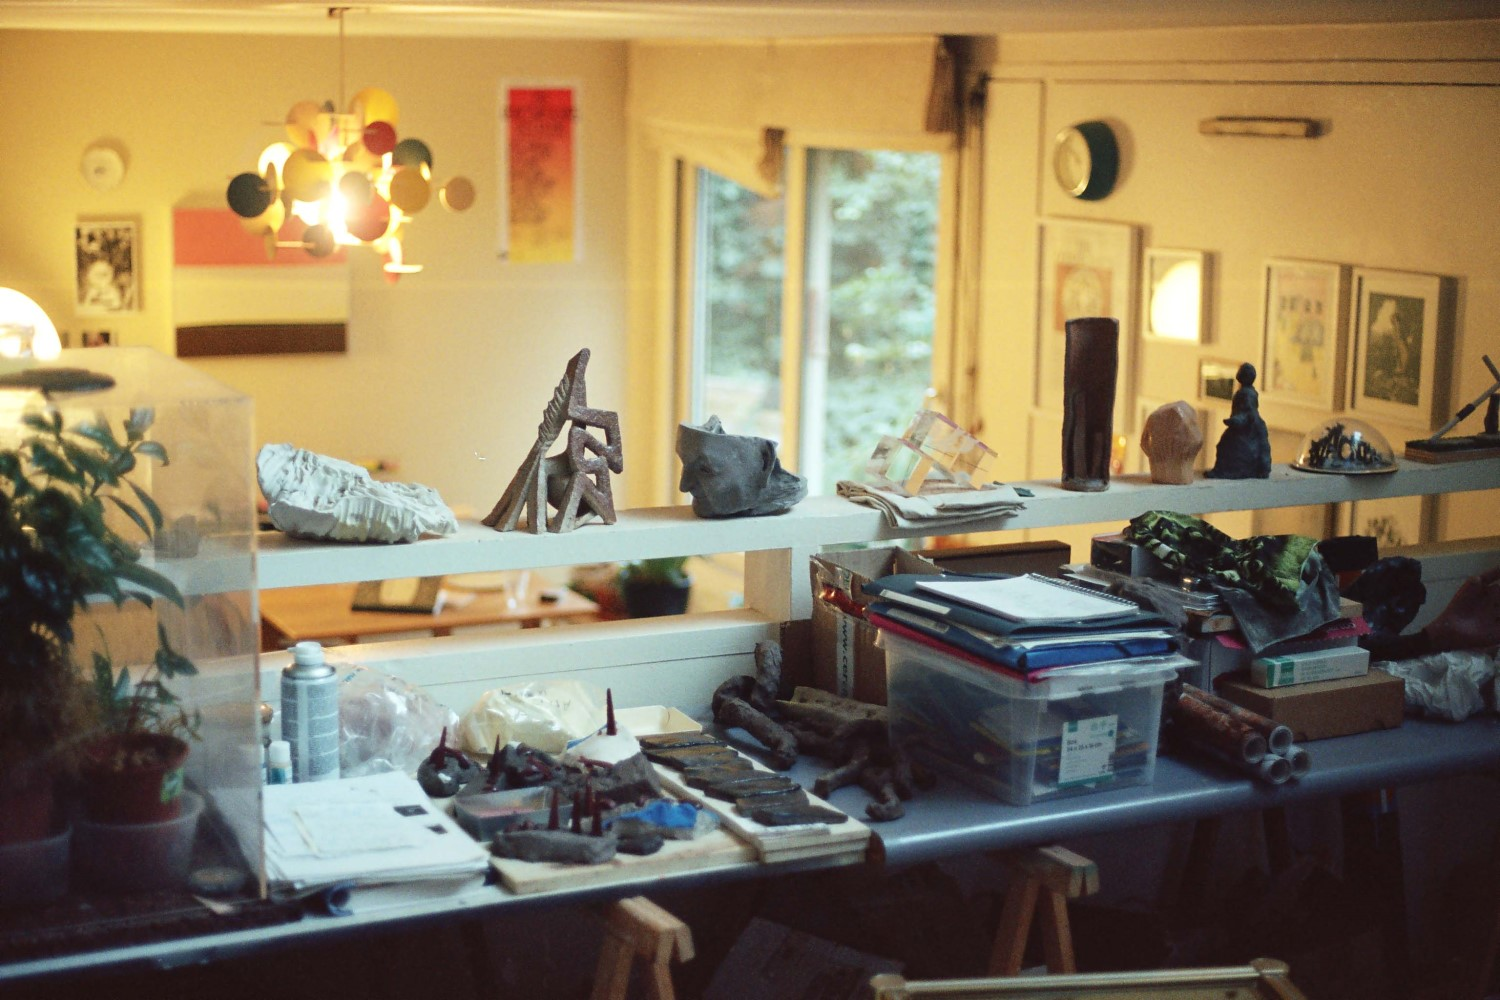 Bettina Samson's studio